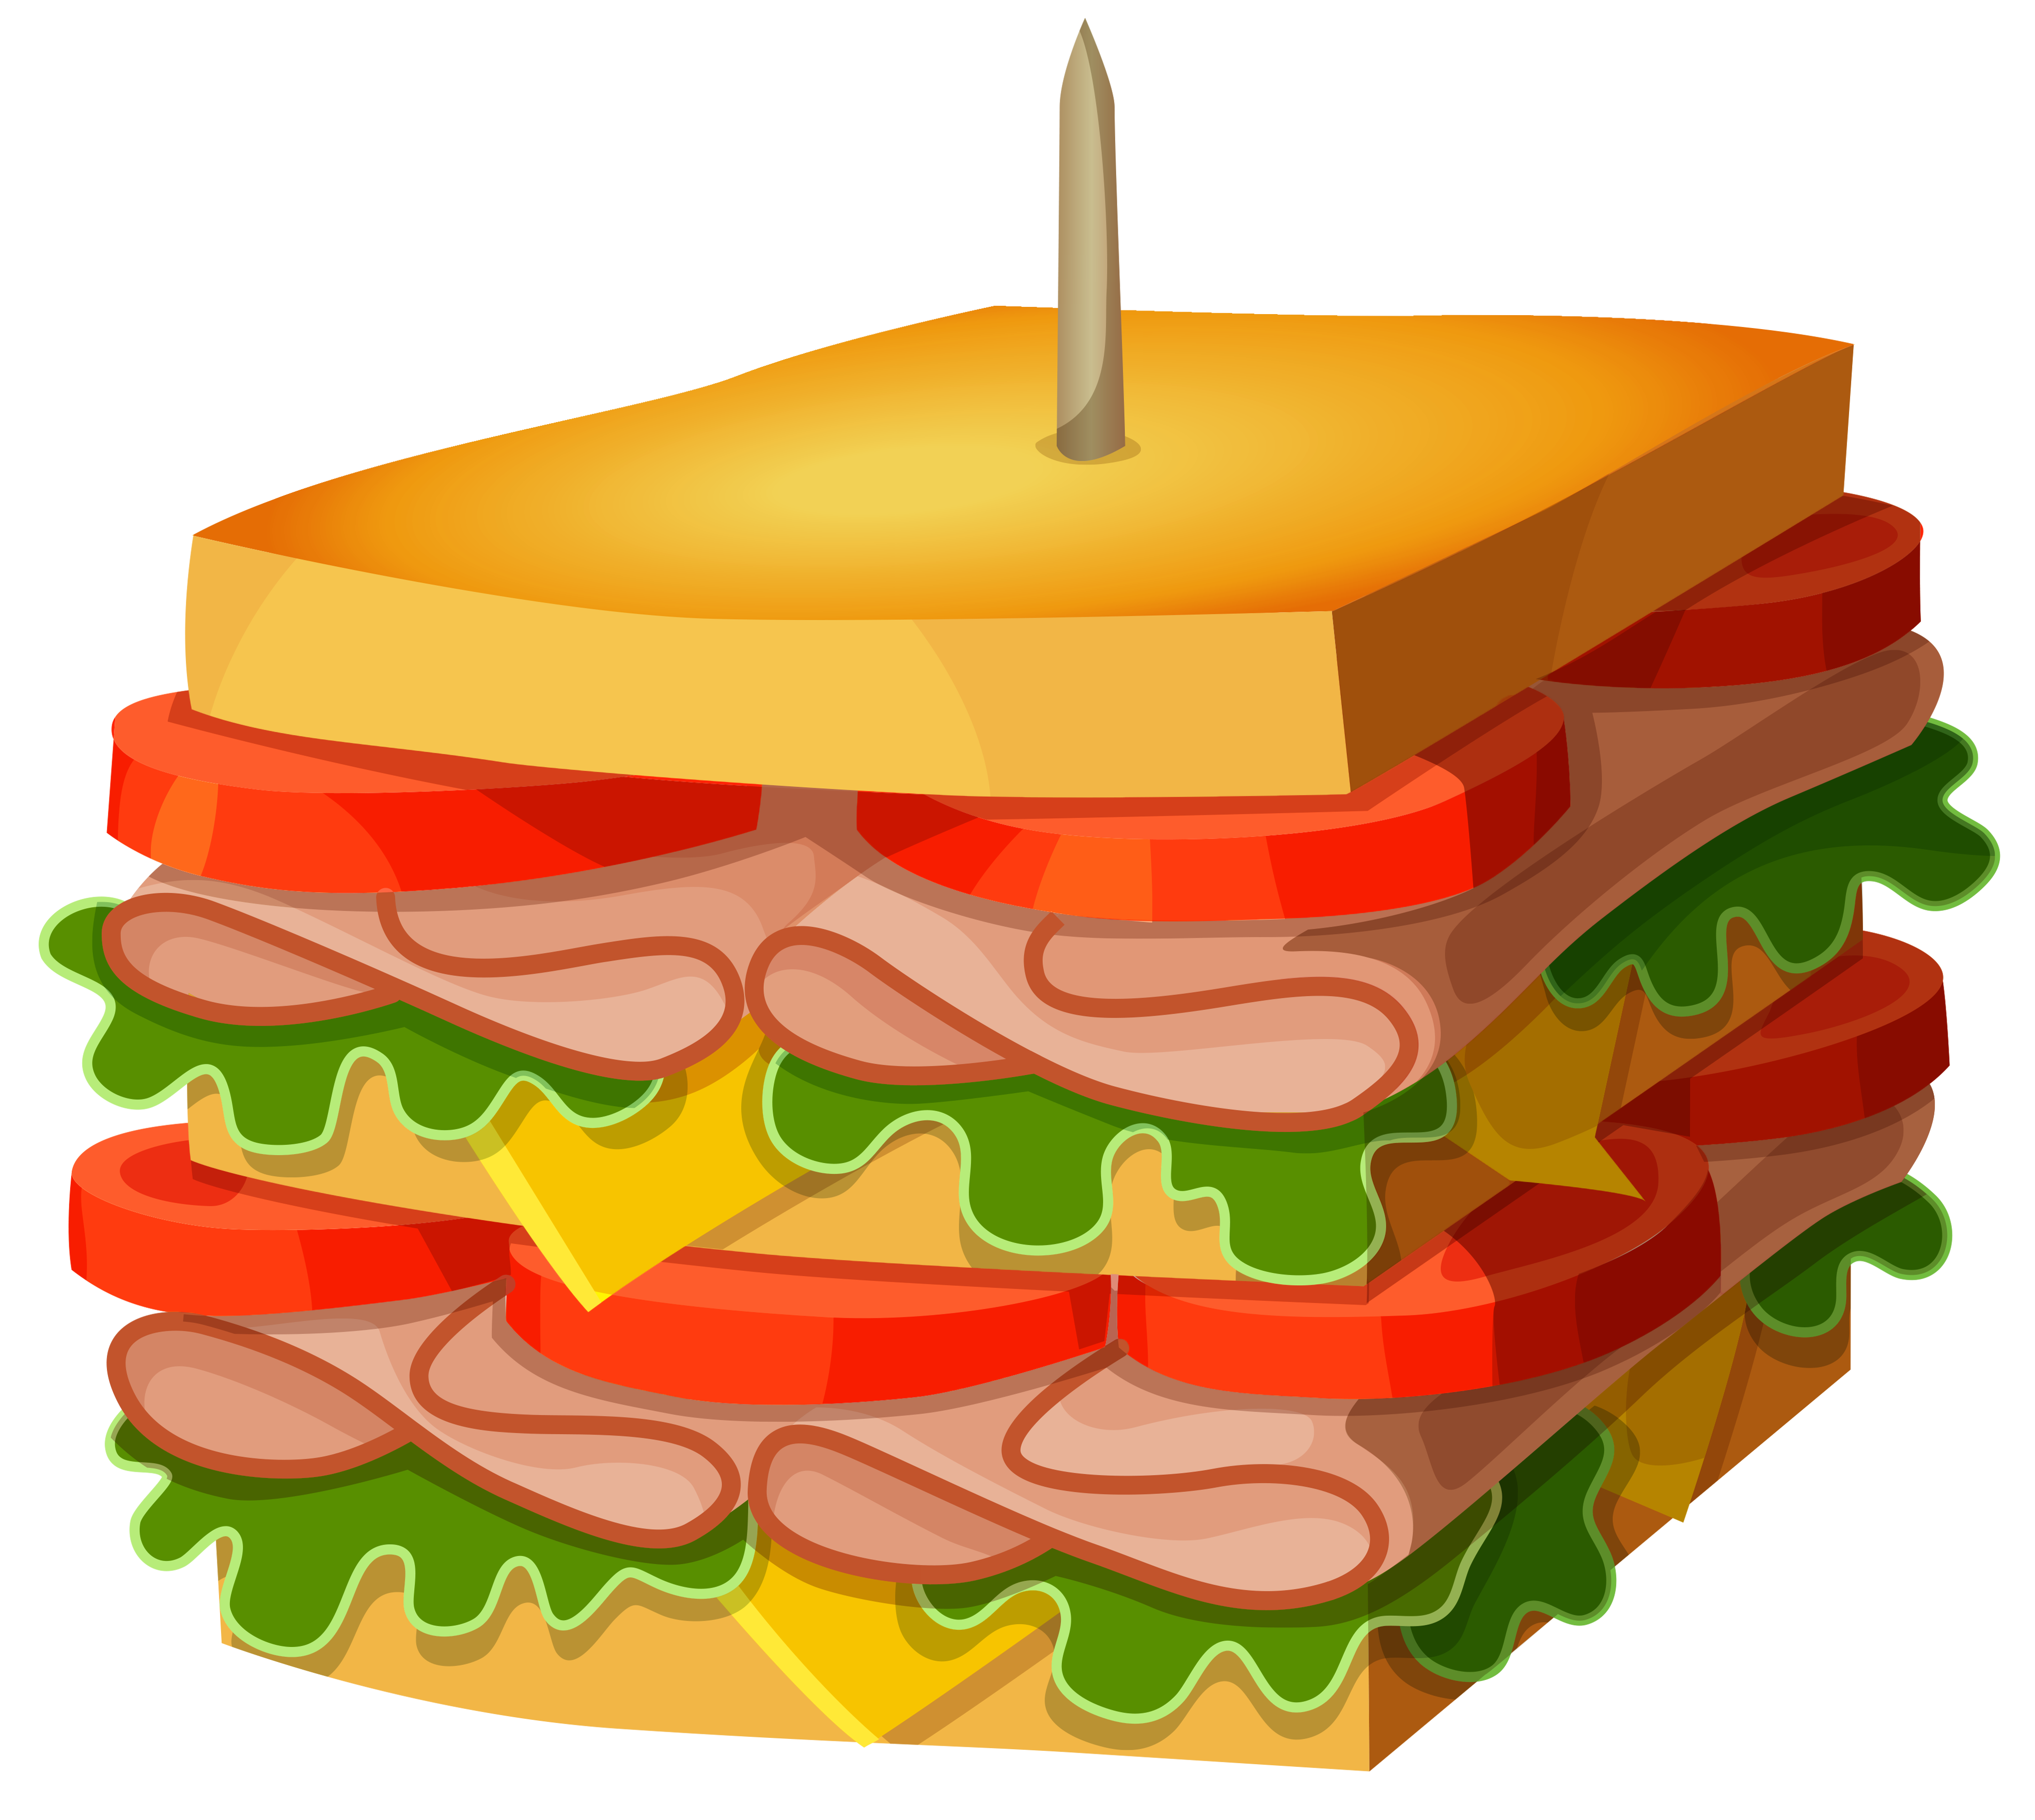 3940x3523 Huge Sandwich Png Vector Clipart Pictureu200b Gallery Yopriceville